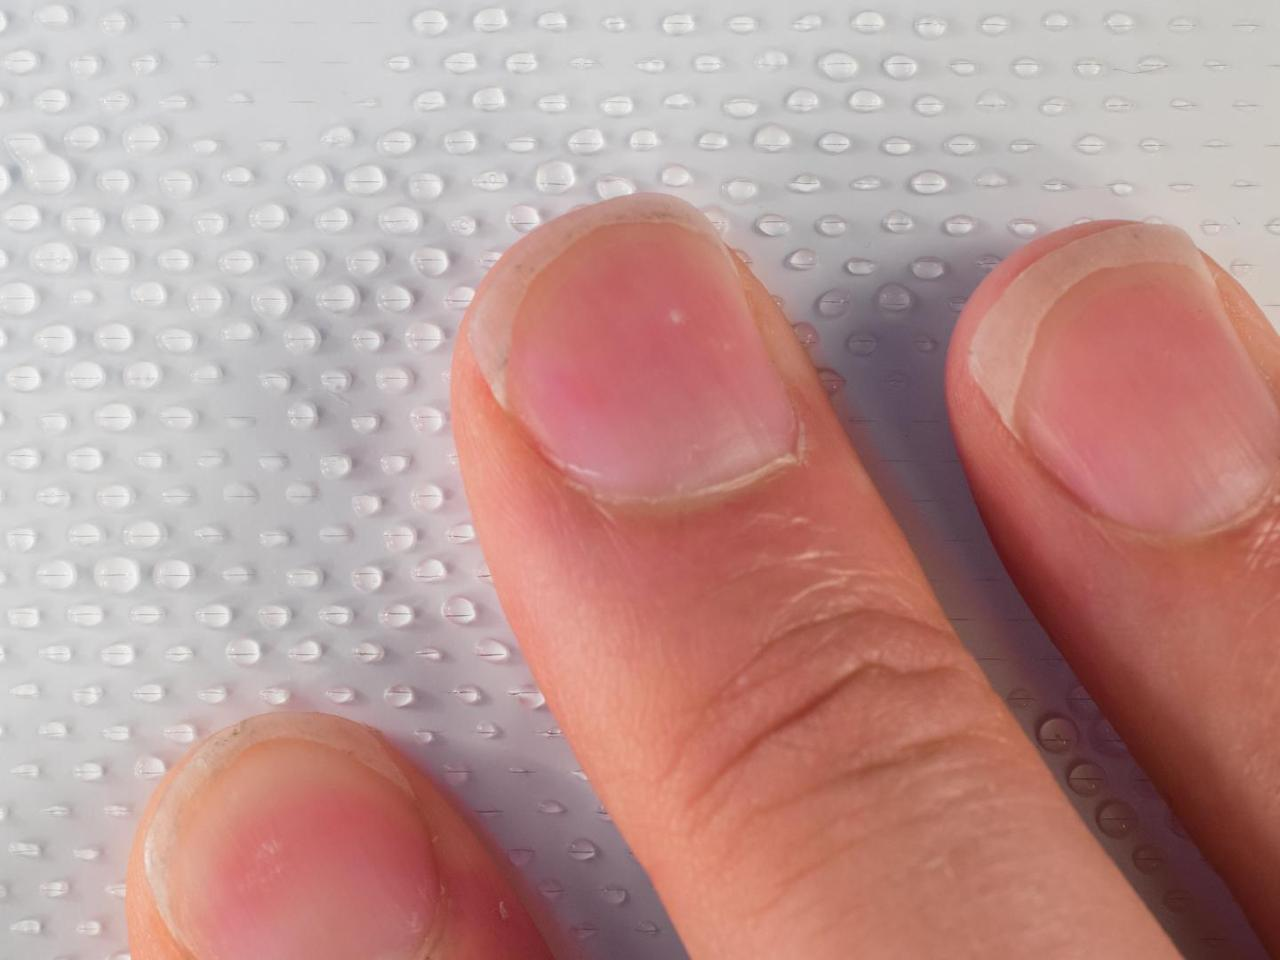 When someone pushes on a Surfaceskin pad, the pressure forces alcohol gel out of a reservoir within it, and through tiny holes on its surface